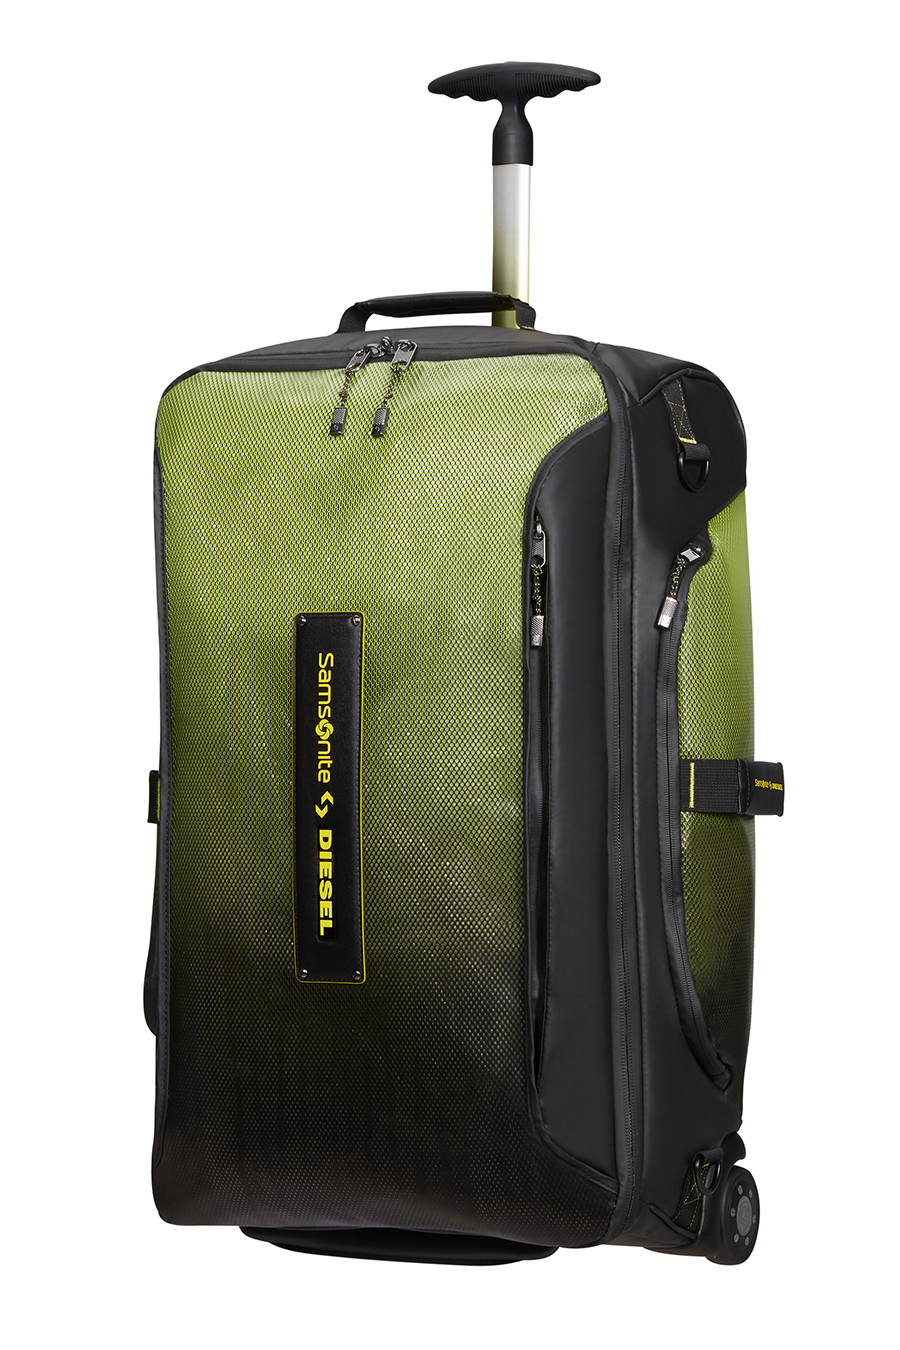 Samsonite x Diesel Paradive Light